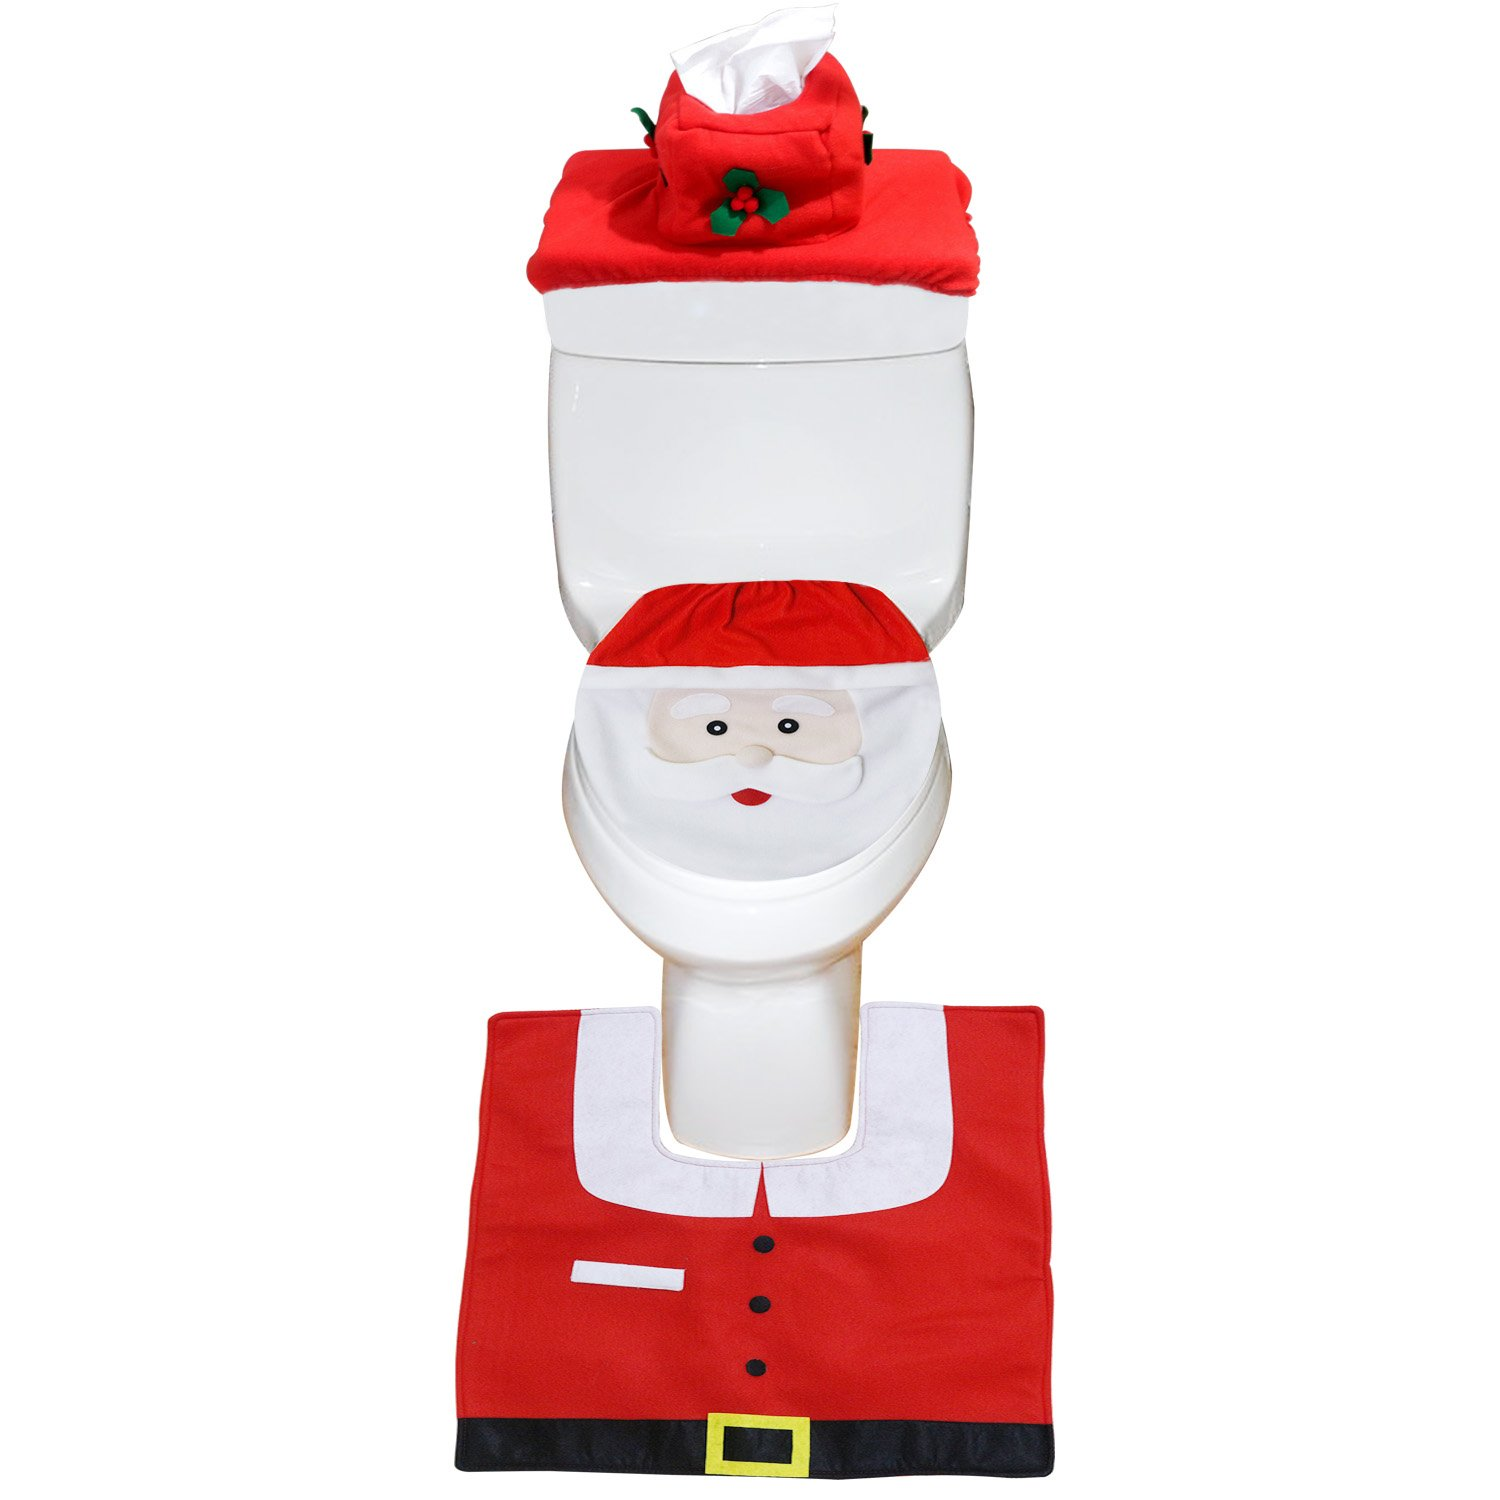 Mosoan Happy Santa Toilet Seat Cover and Rug Set Red - Christmas Bathroom Decorations - Set of 3